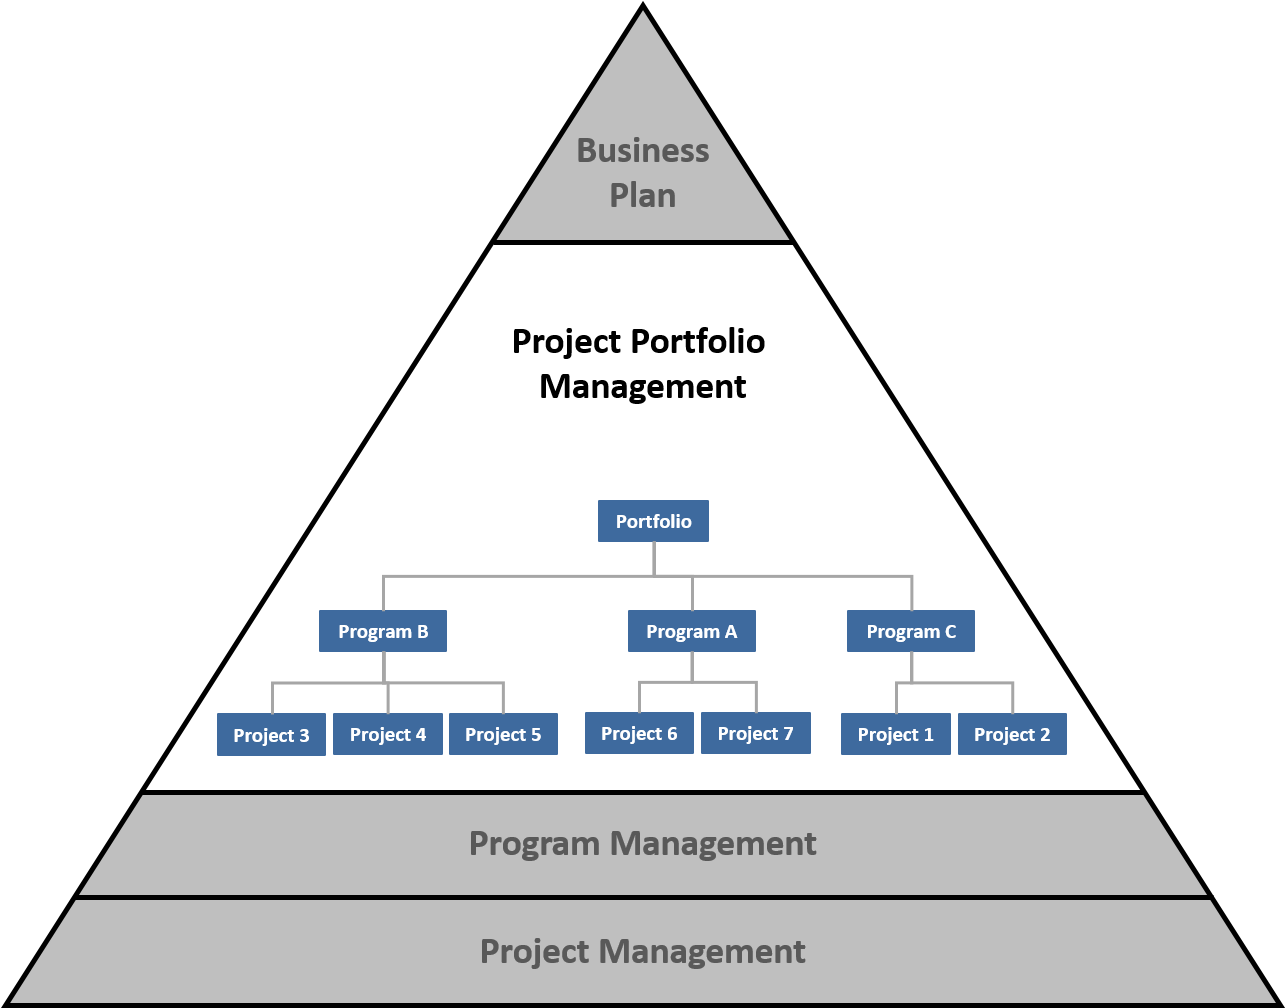 organizational project management framework triangle with 'portfolio  management' section highlighted